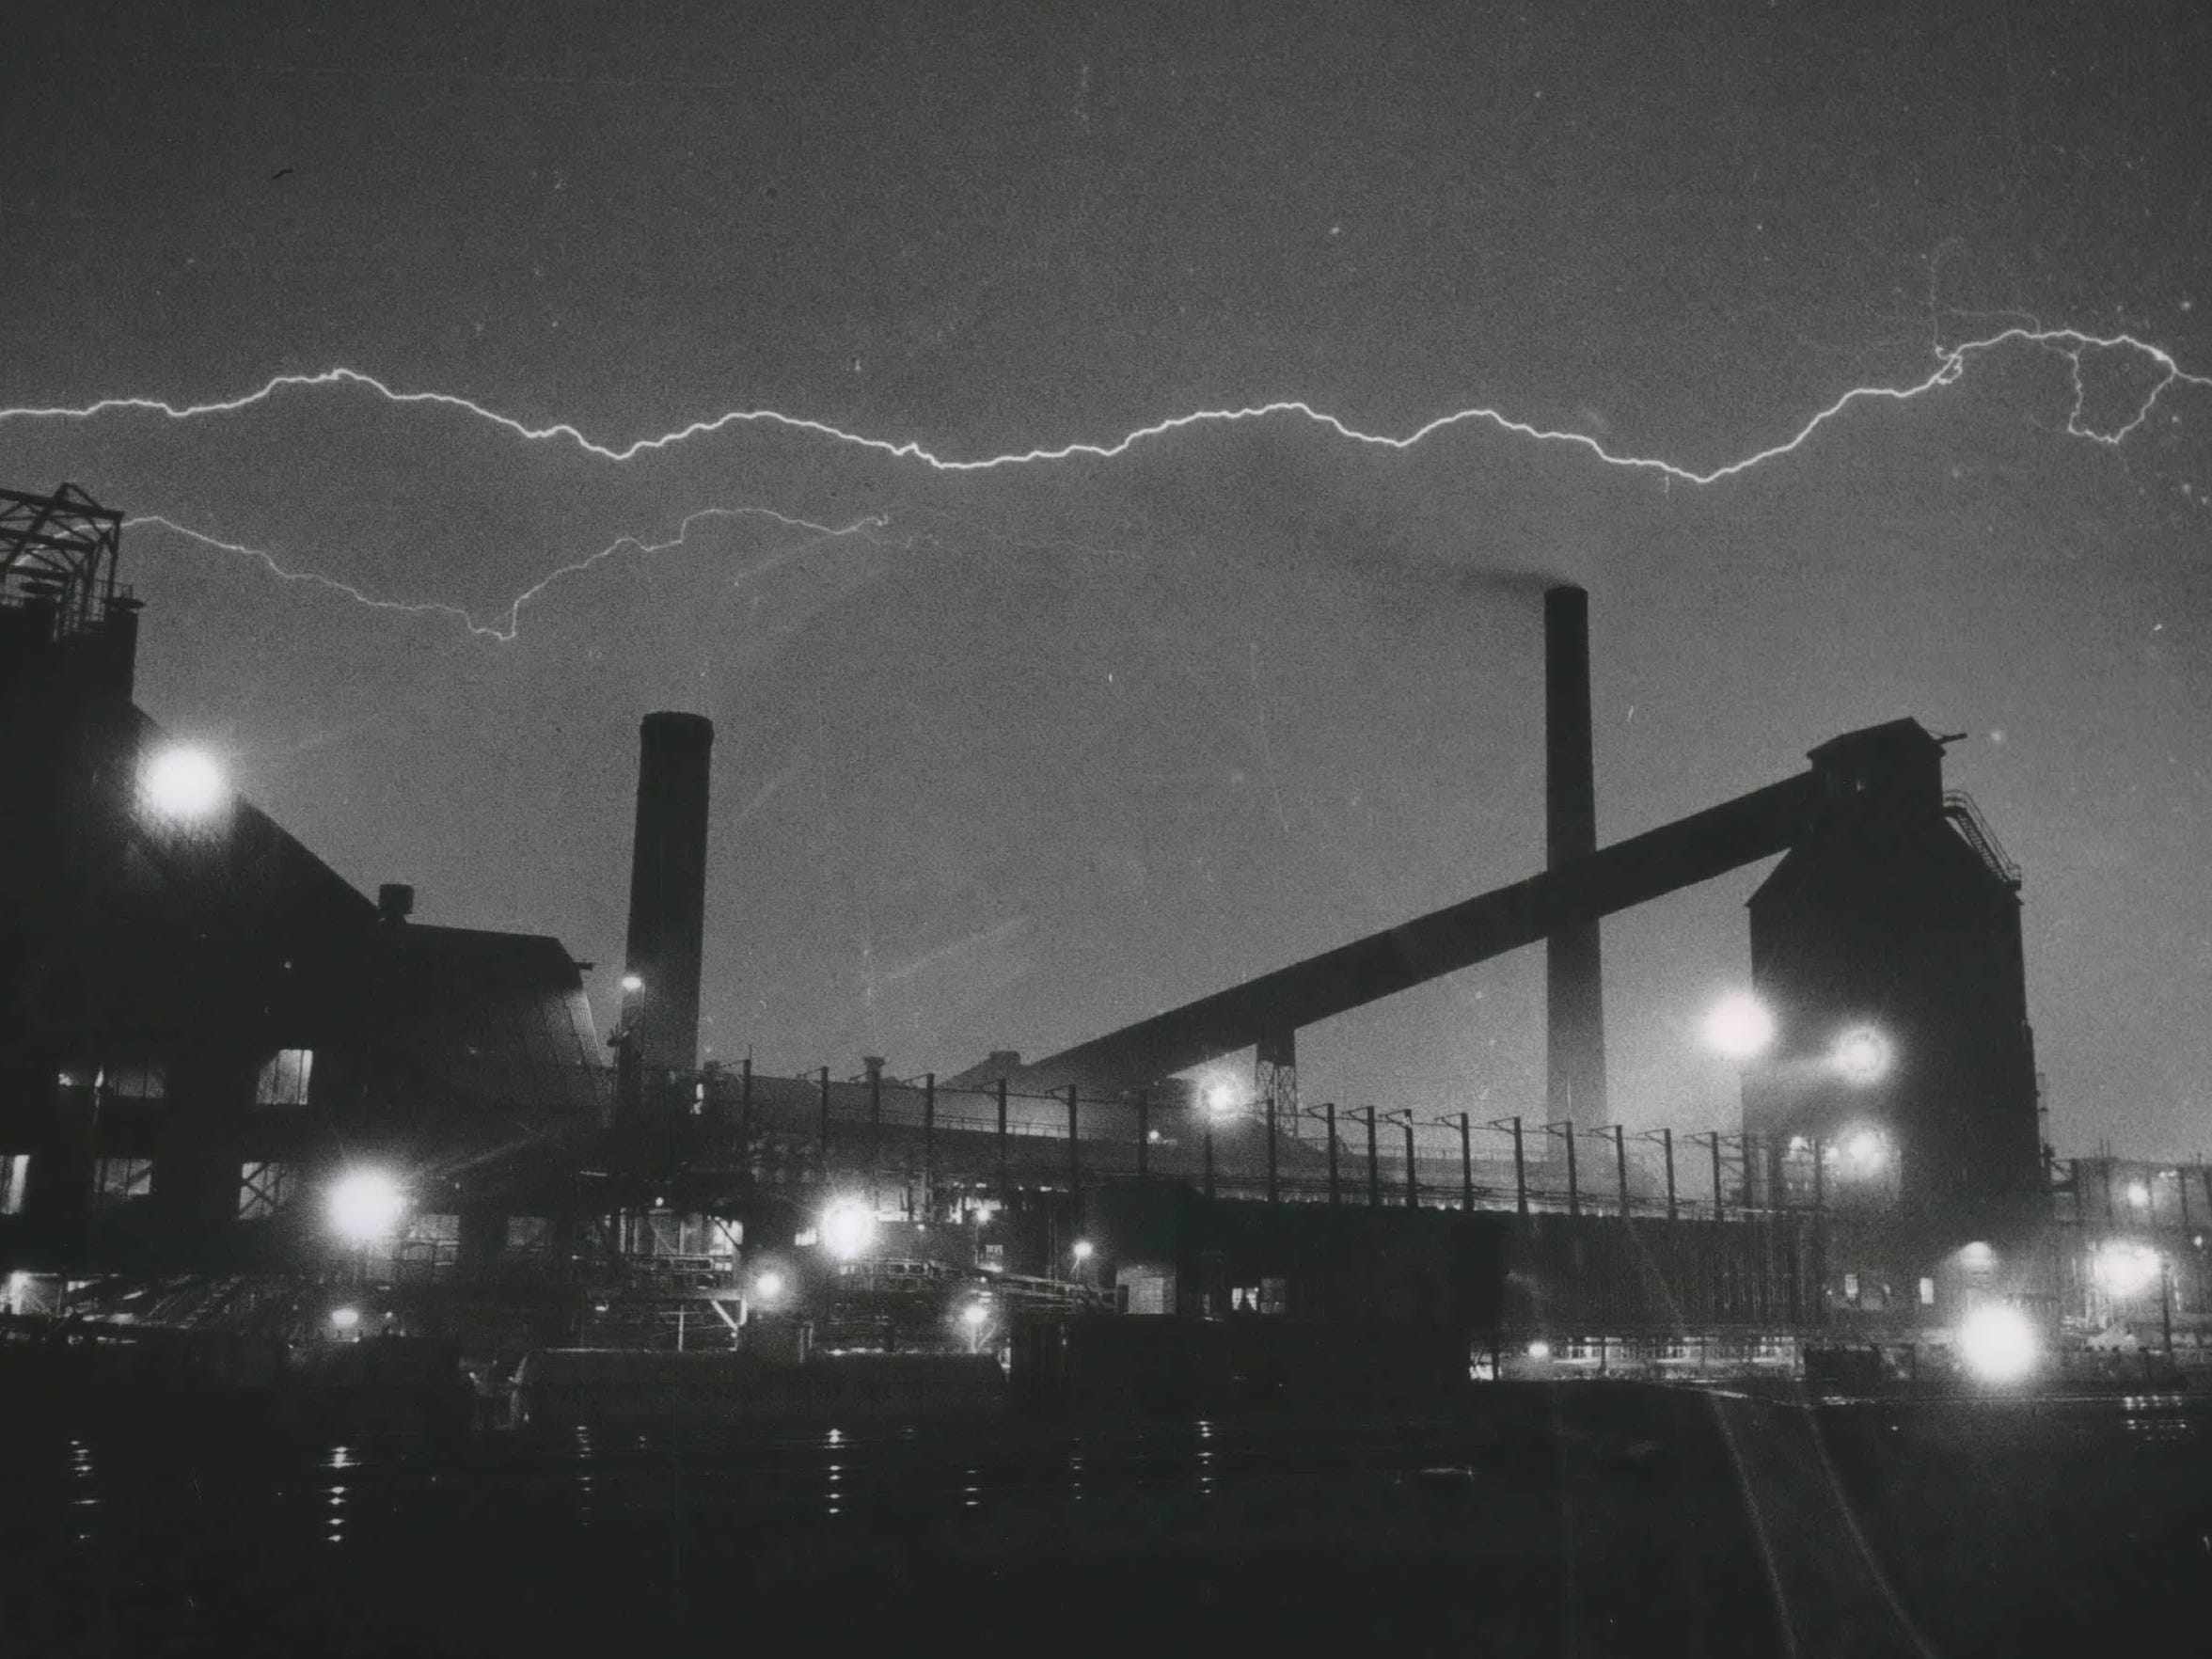 Lightning flashes across the sky in this 1961 photo